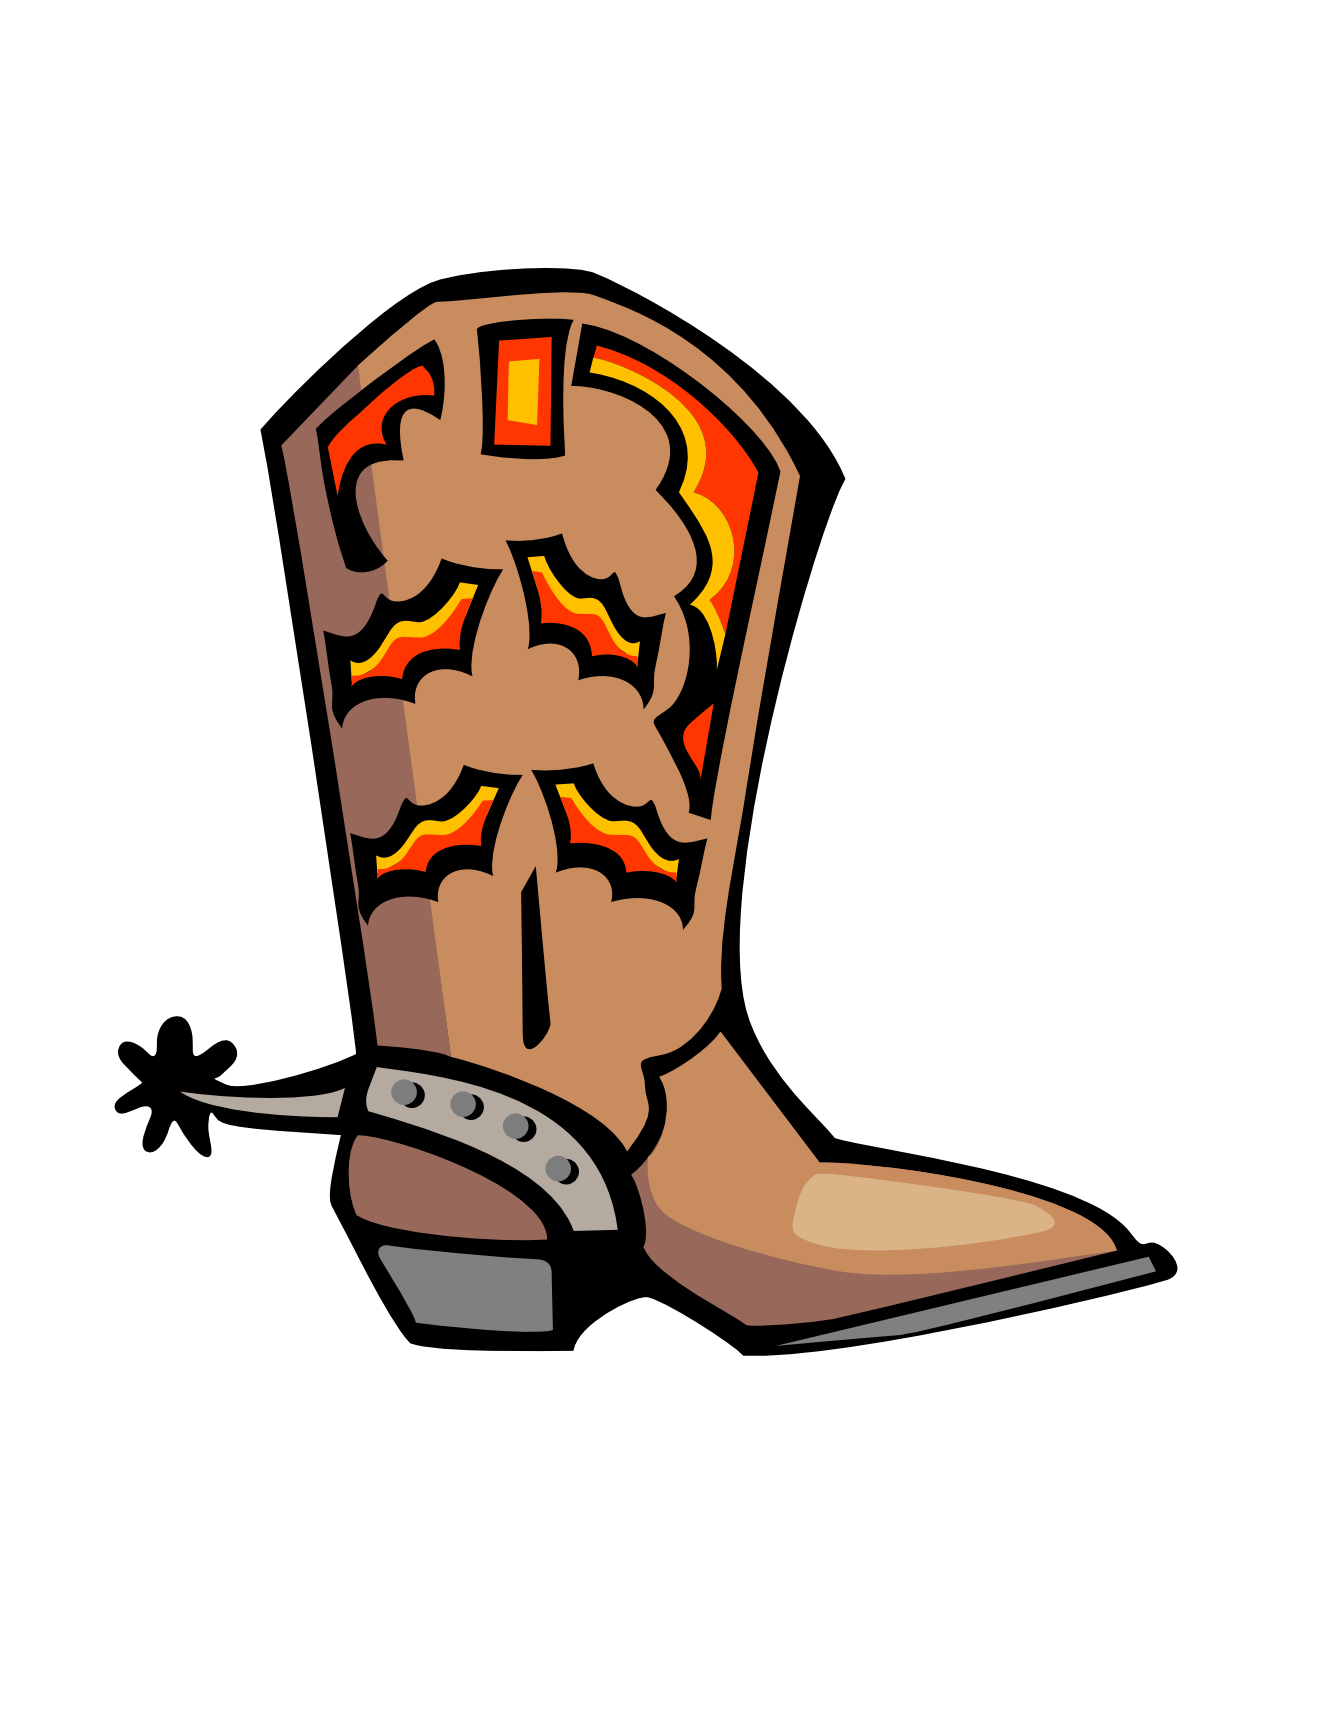 Clipart cowboy boots graphic library download Free Cowboy Boot Images, Download Free Clip Art, Free Clip Art on ... graphic library download